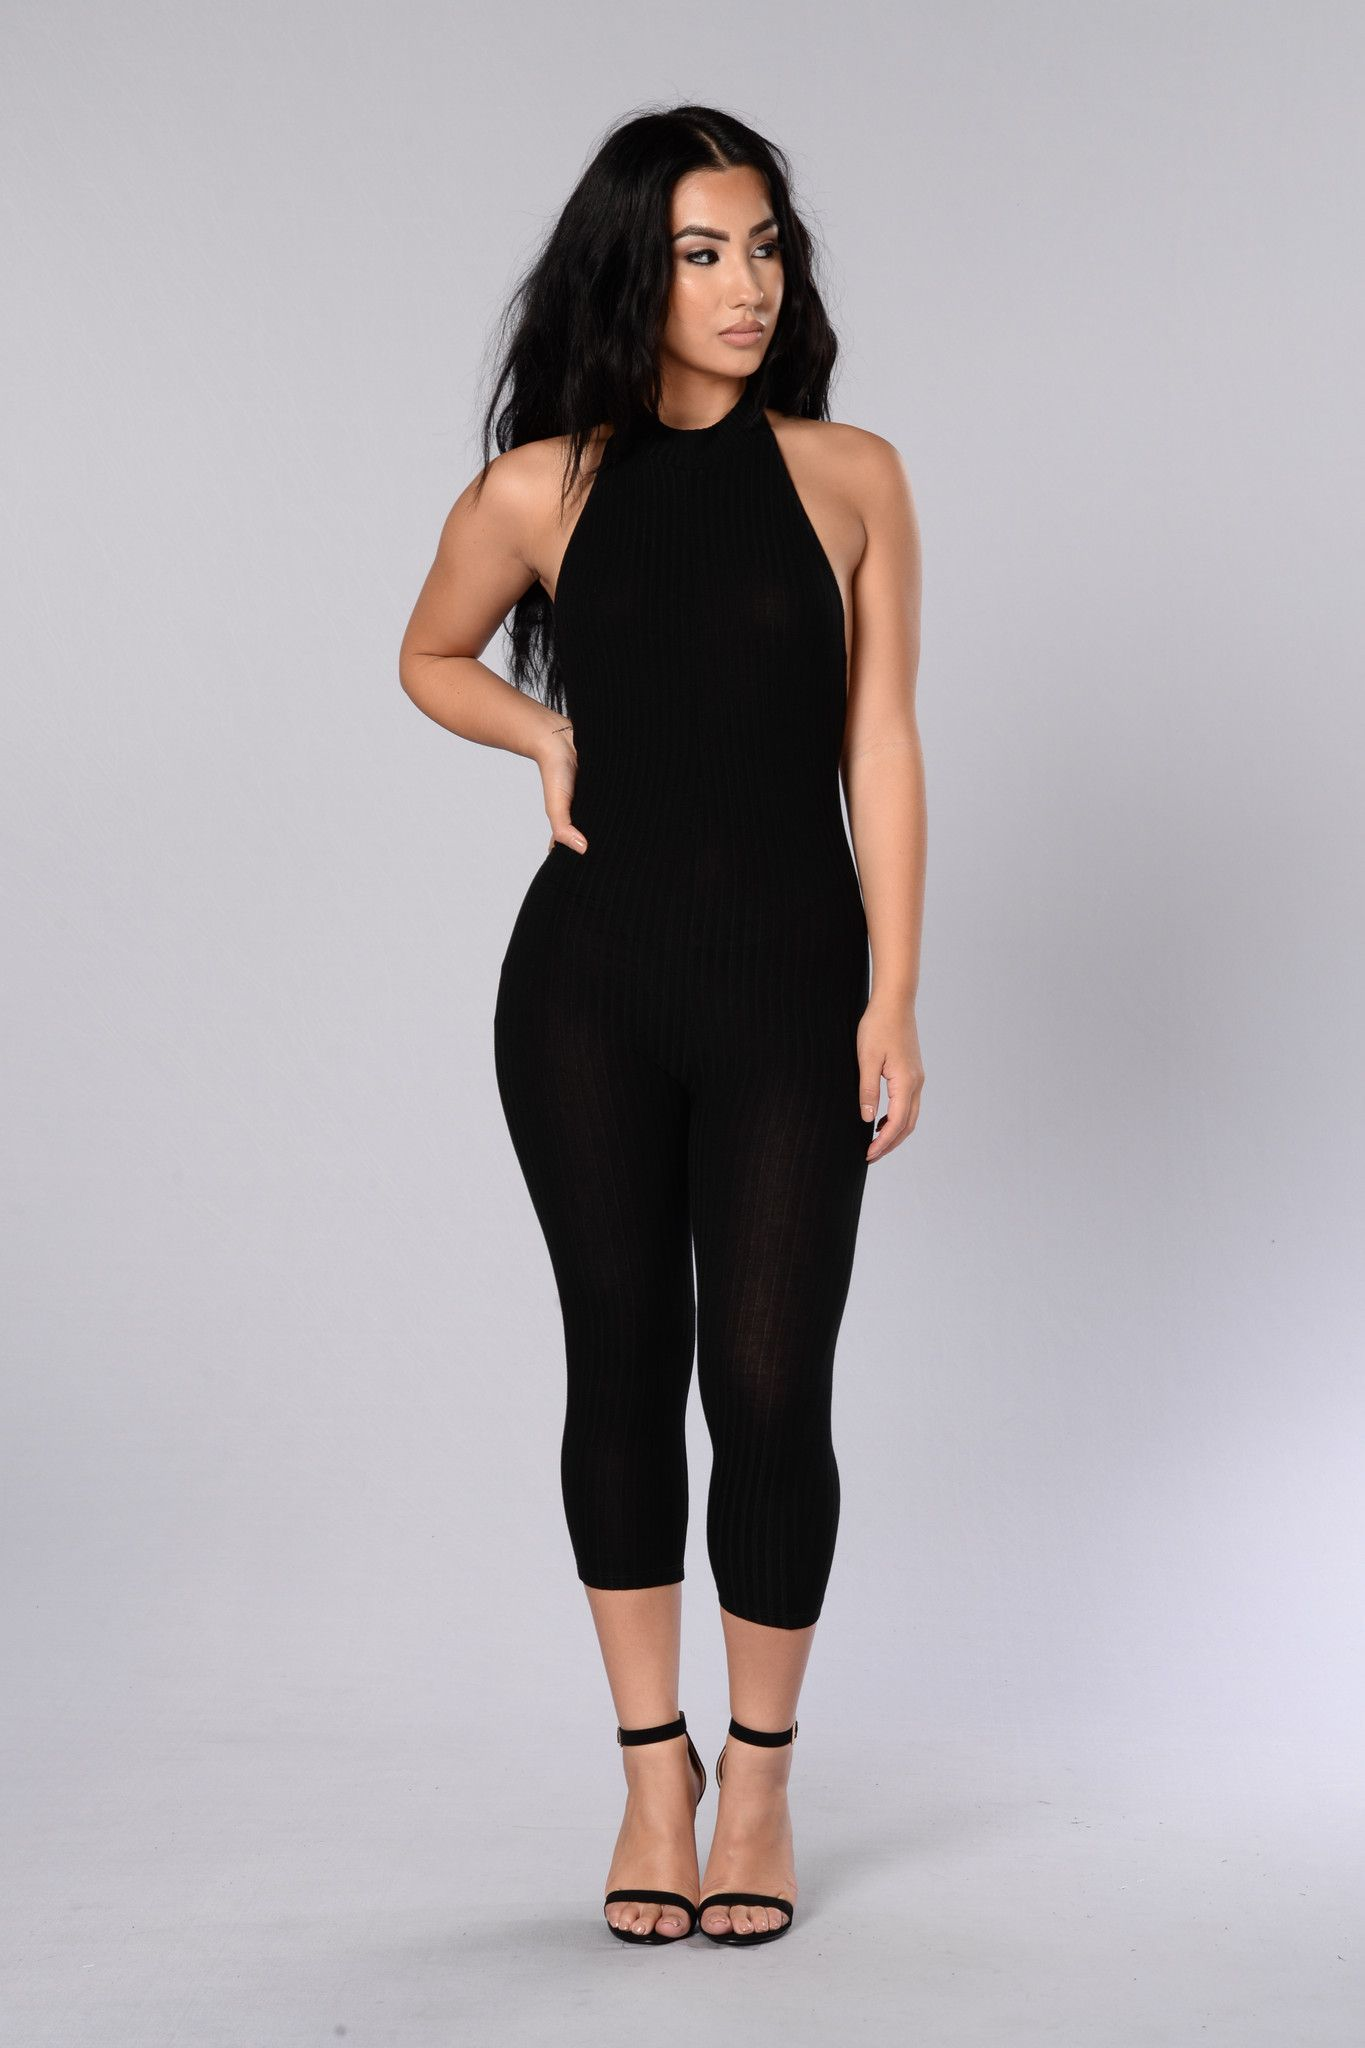 398b1af3c965 Available in Sage and Black - Ribbed Jumpsuit - Halter Neckline - Cropped  Length - Open Back - Made in USA - 48% Rayon 48% Polyester 4% Spandex